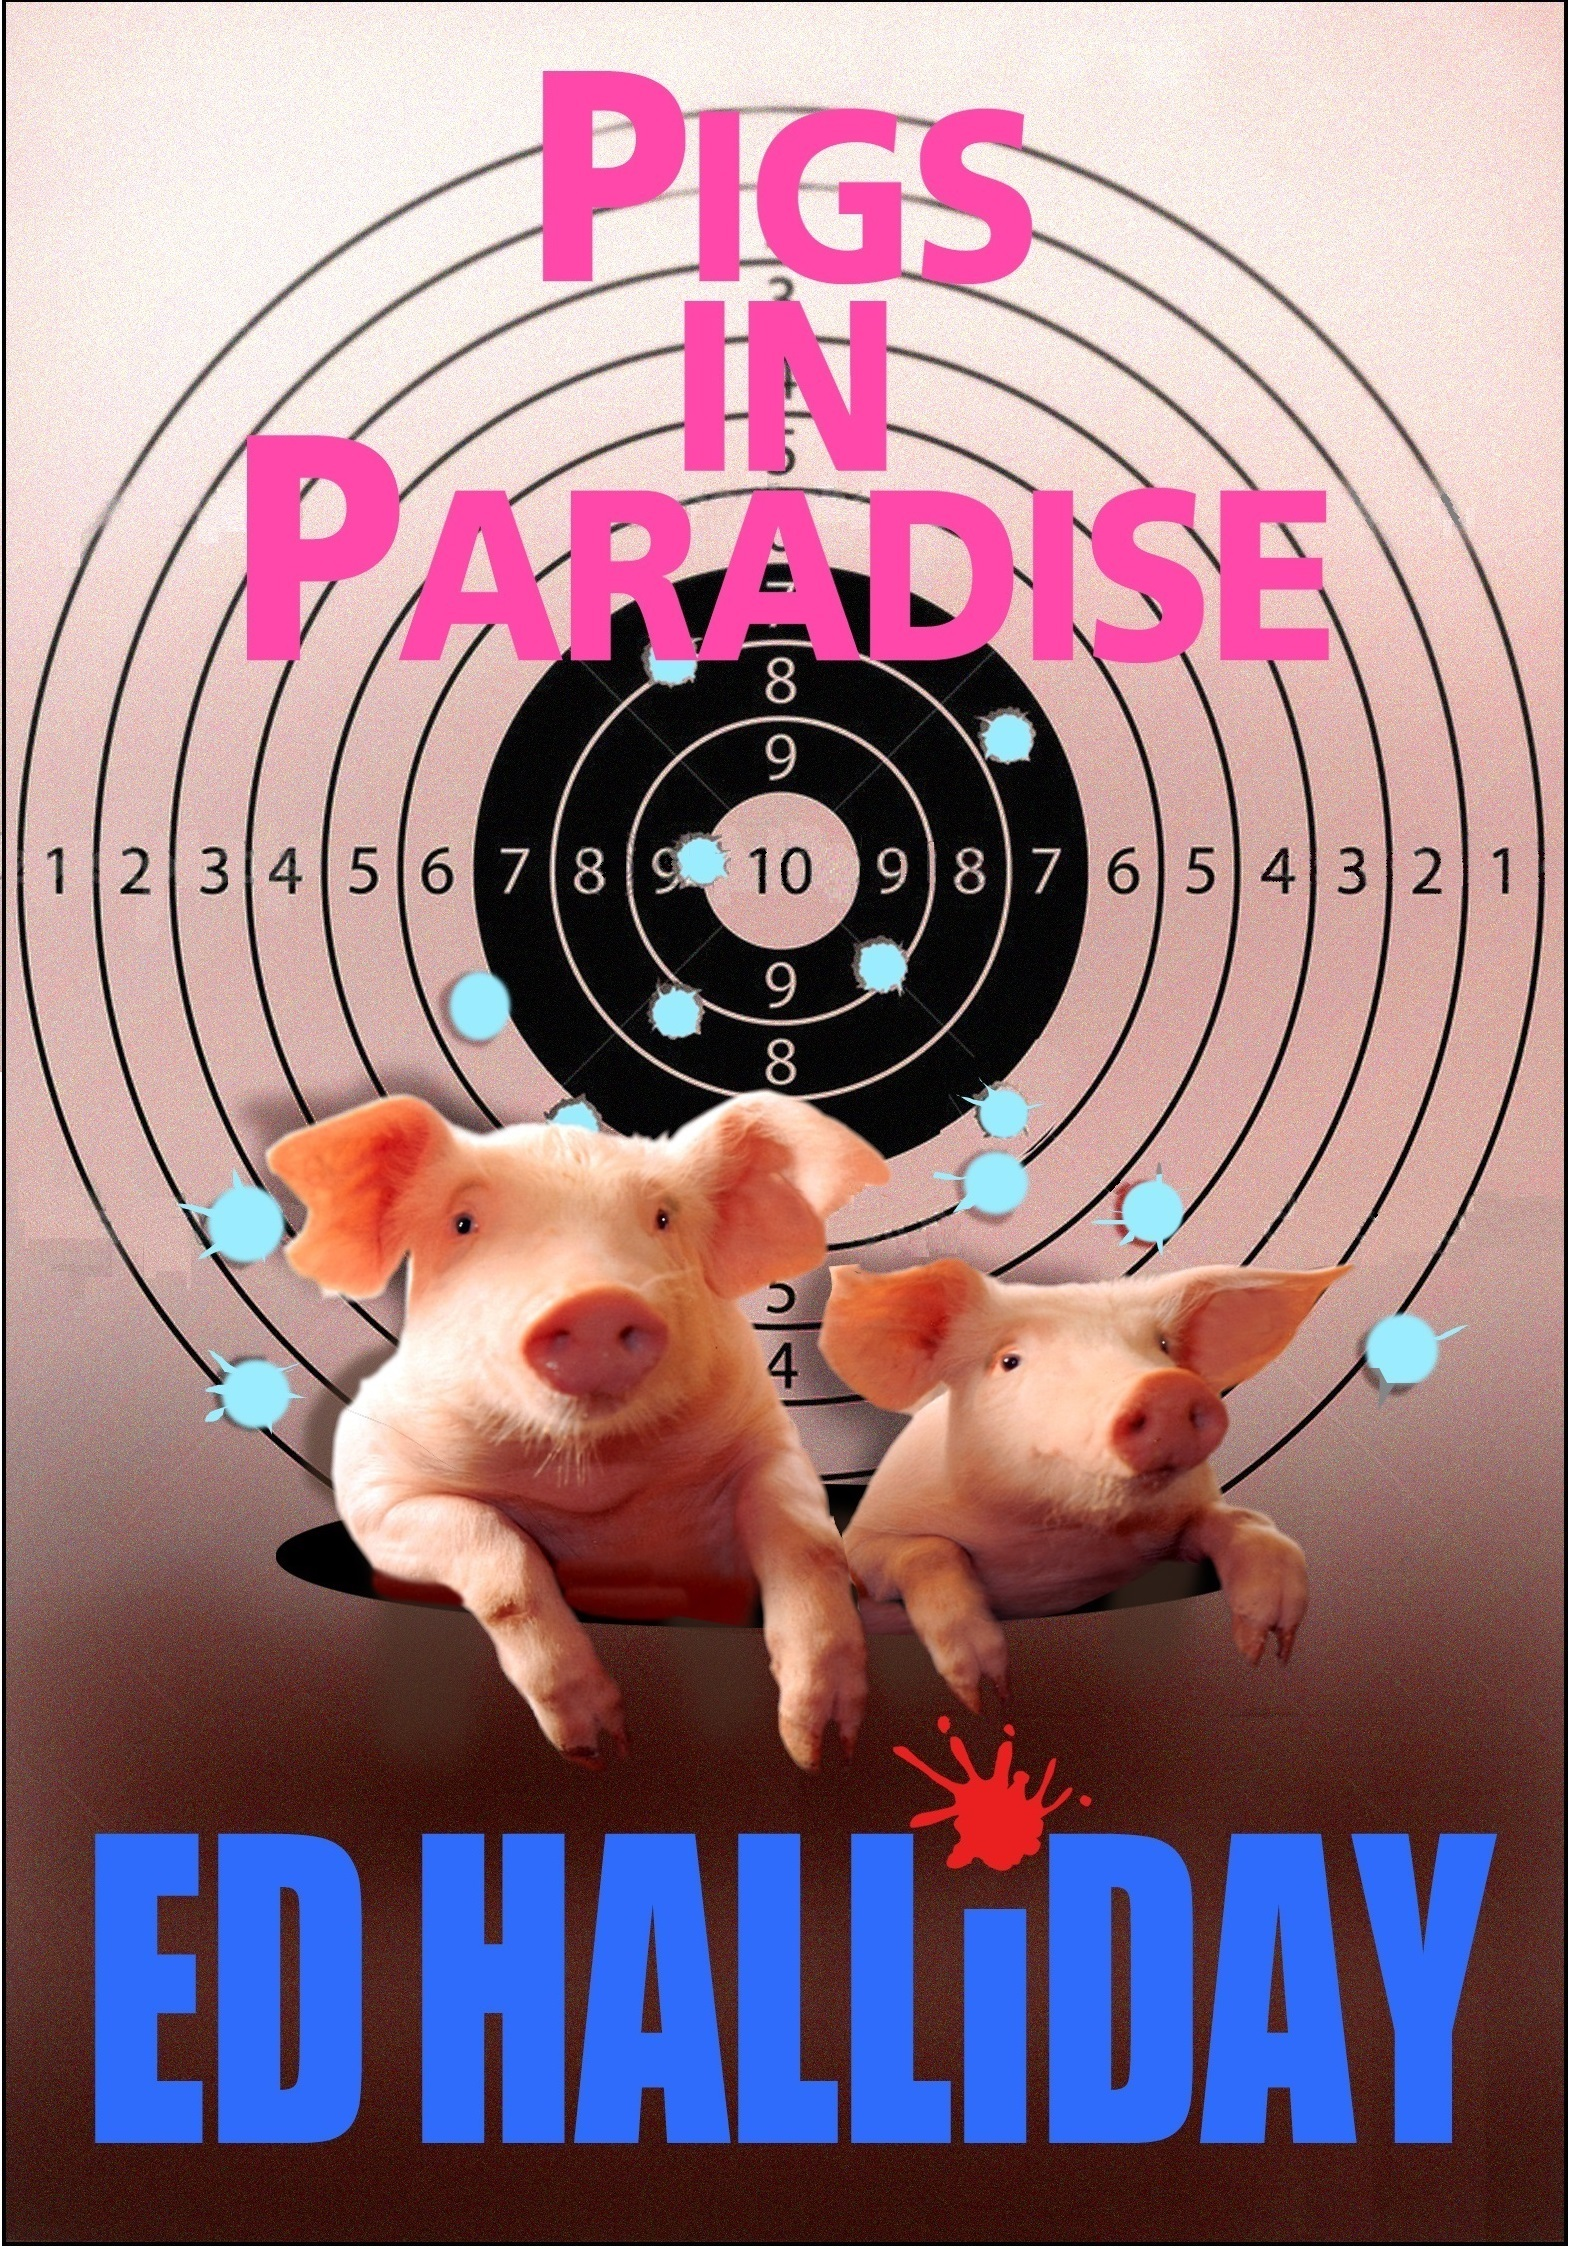 pigs in paradise  by  Ed Halliday